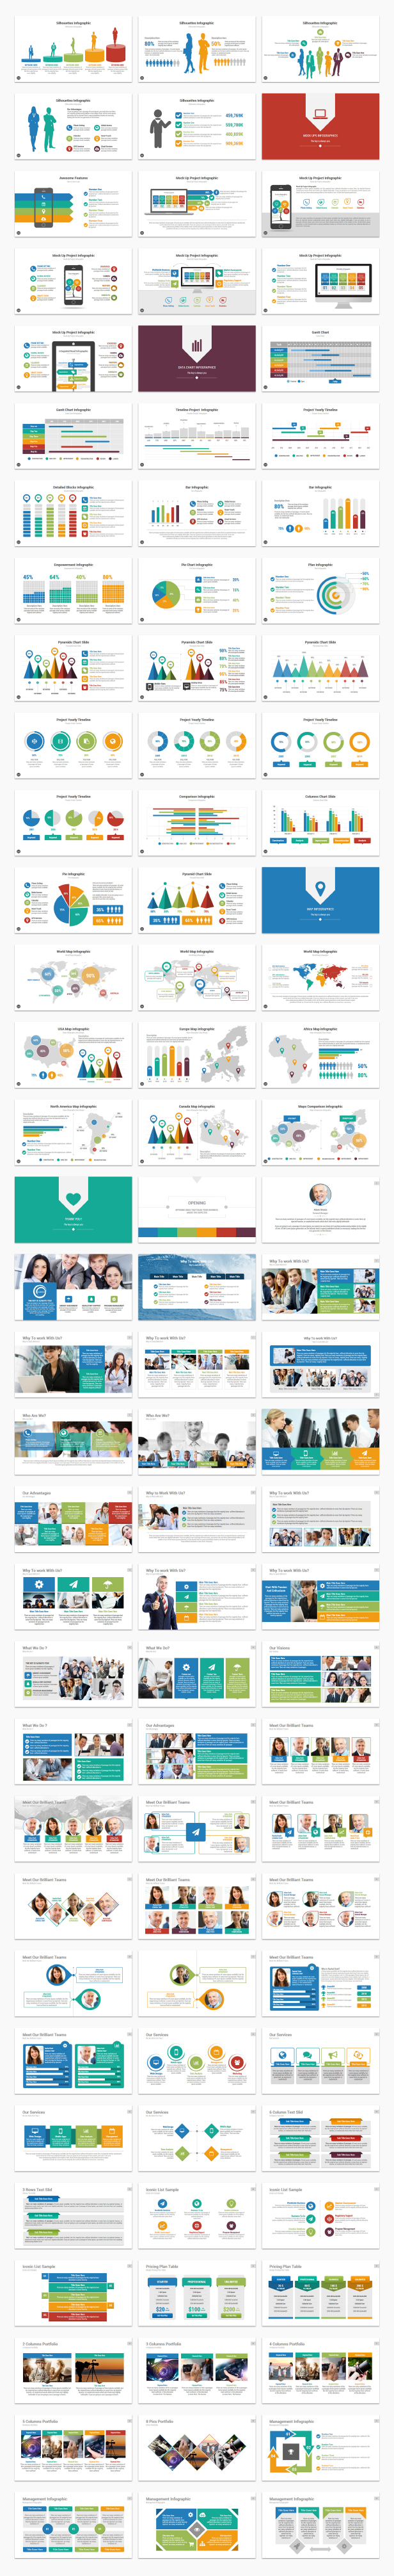 2 In 1 Multix Top Complete Business Solutions Keynote Presentation Templates Bundle - 3